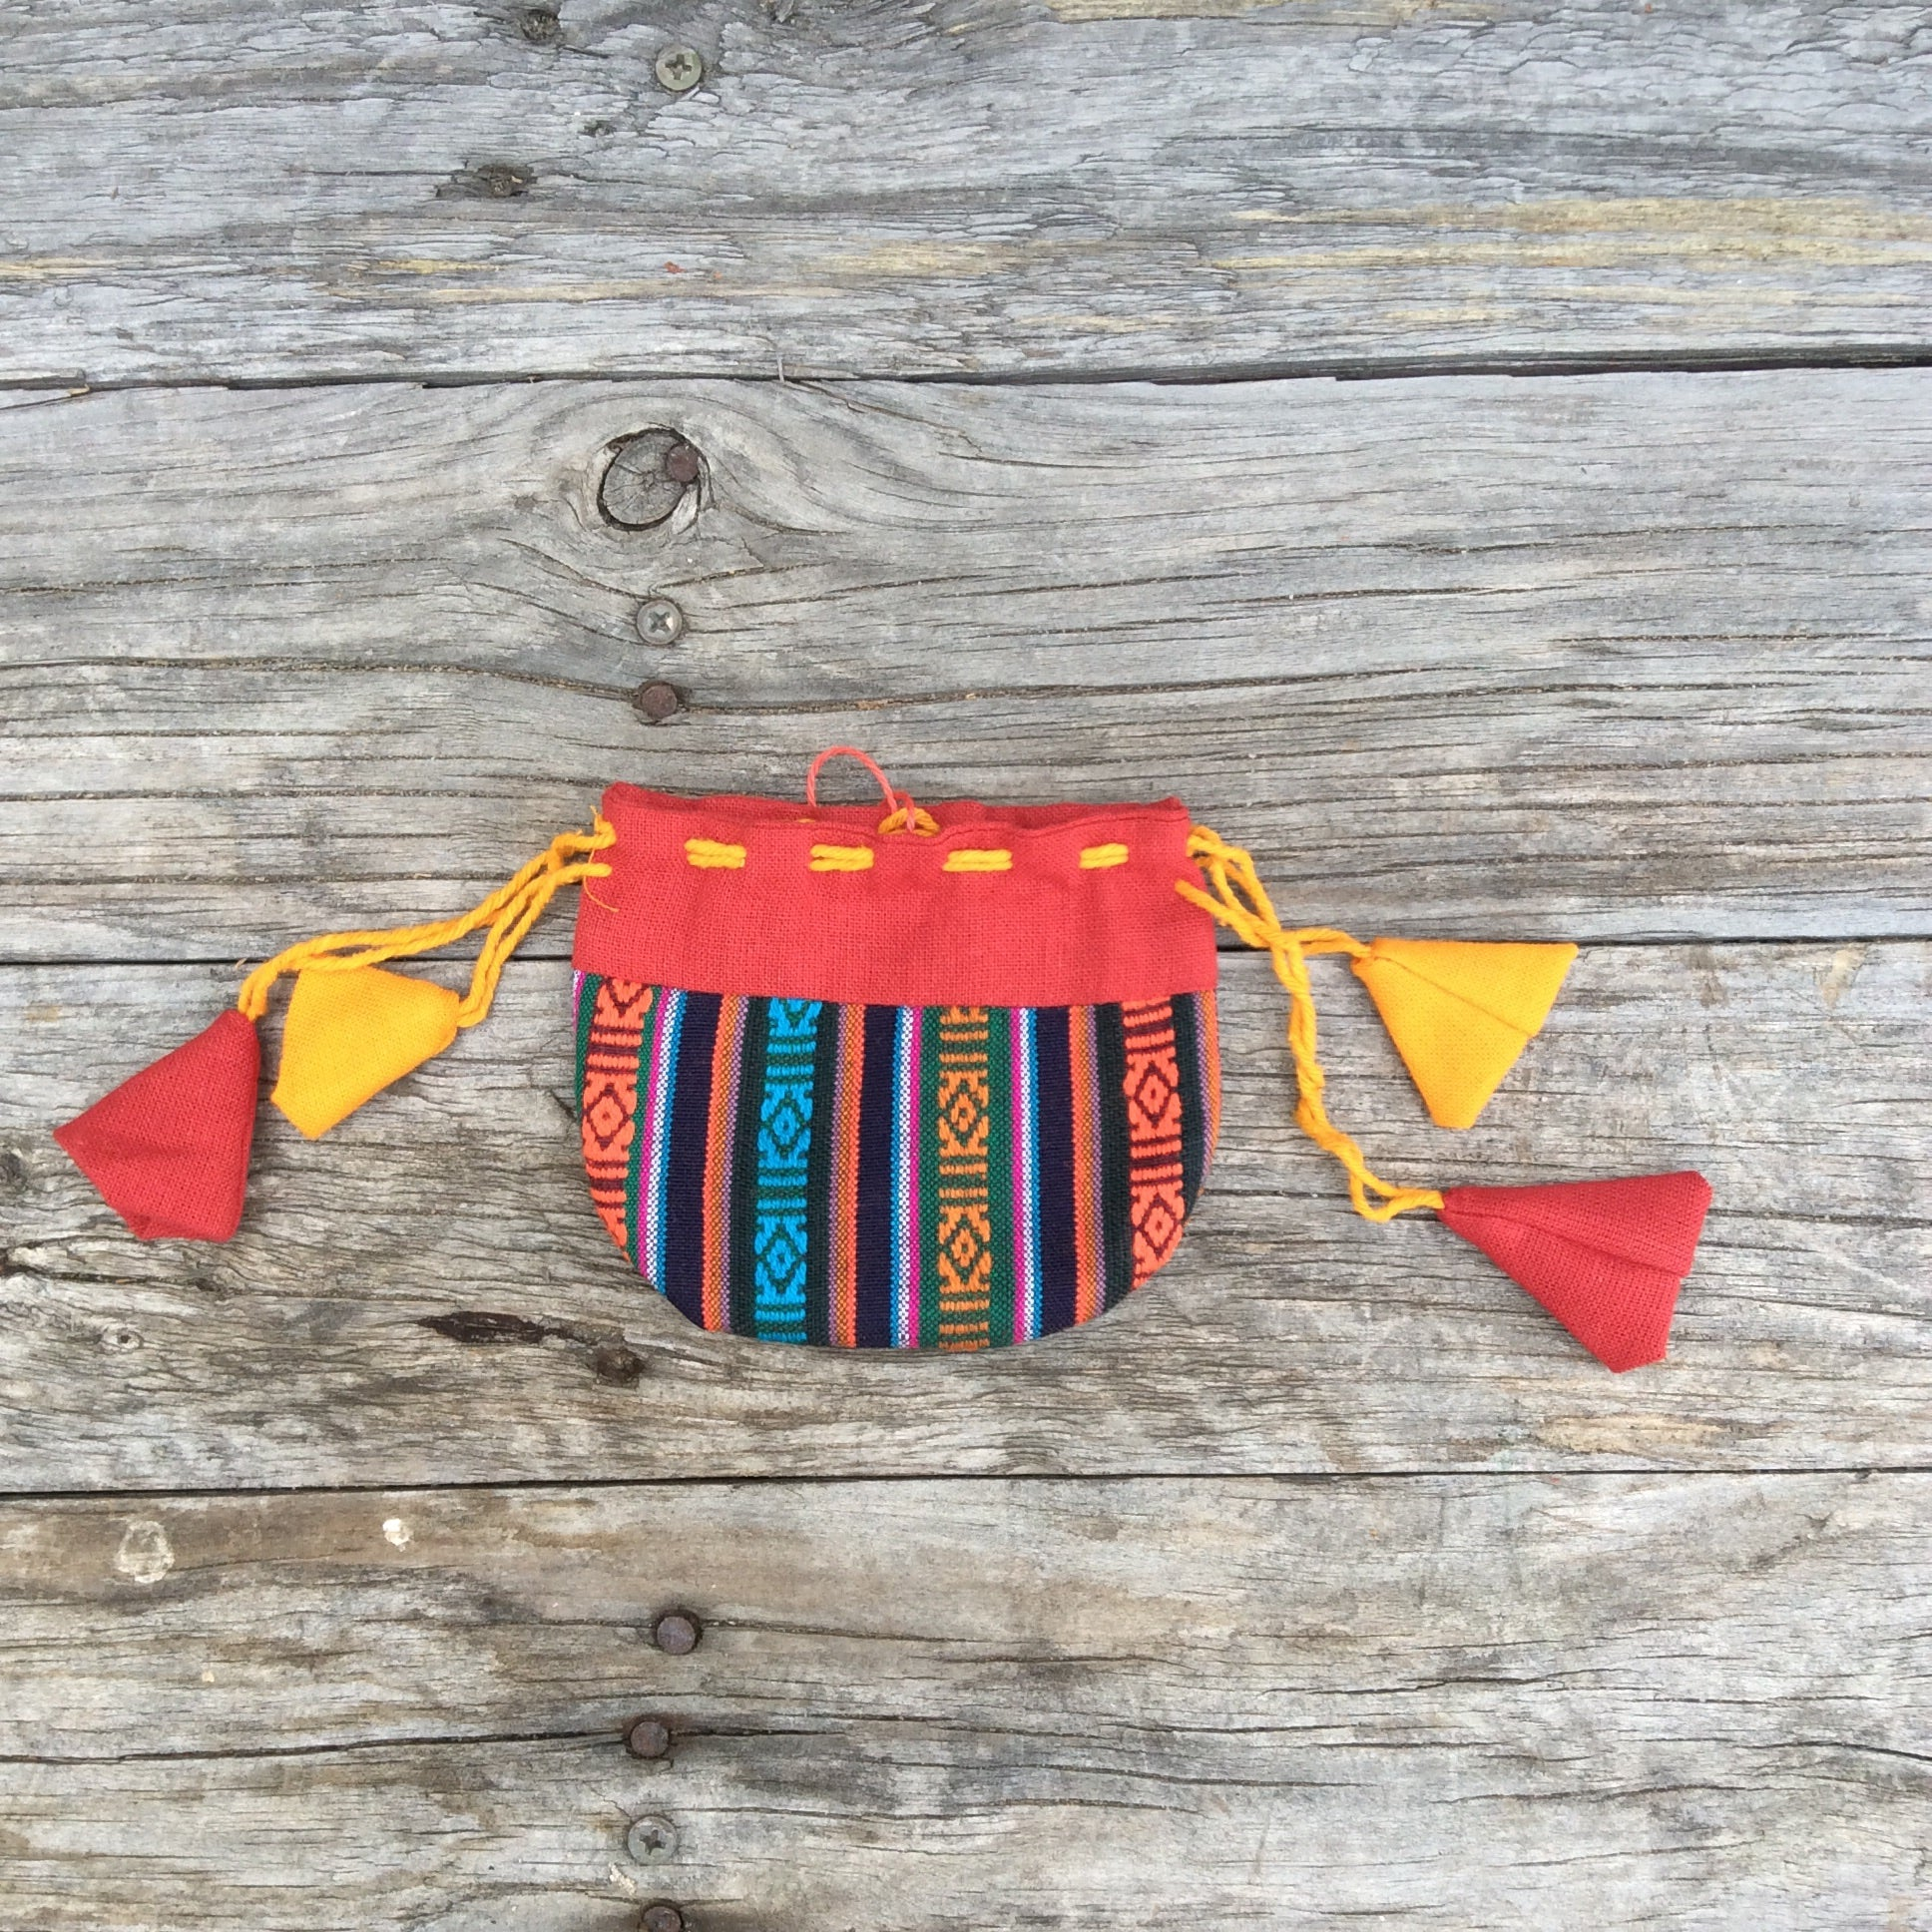 Fair Trade Ethical Traditional Nepalese Small Bags